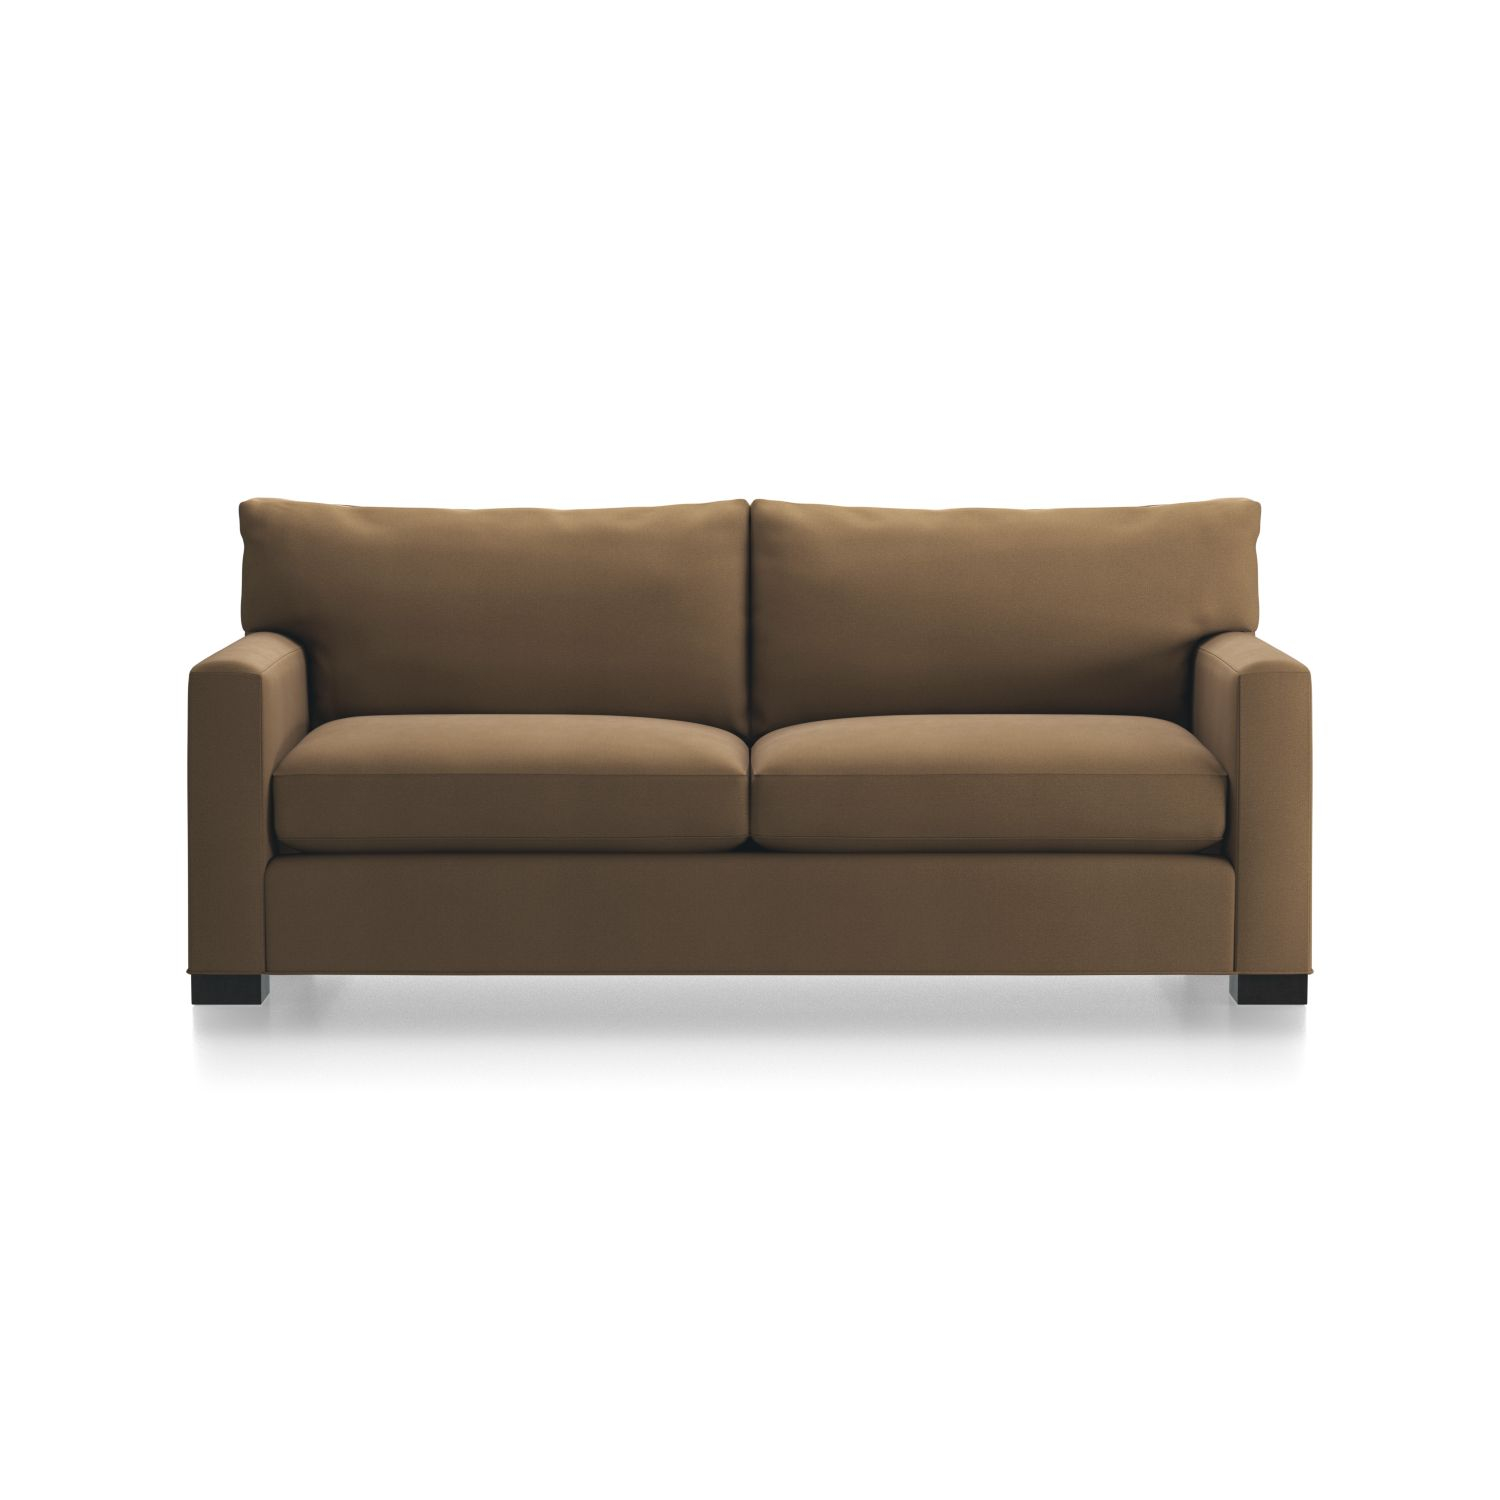 Axis Ii Leather Swivel Chair + Reviews | Crate And Barrel Pertaining To Espresso Leather Swivel Chairs (Image 3 of 20)